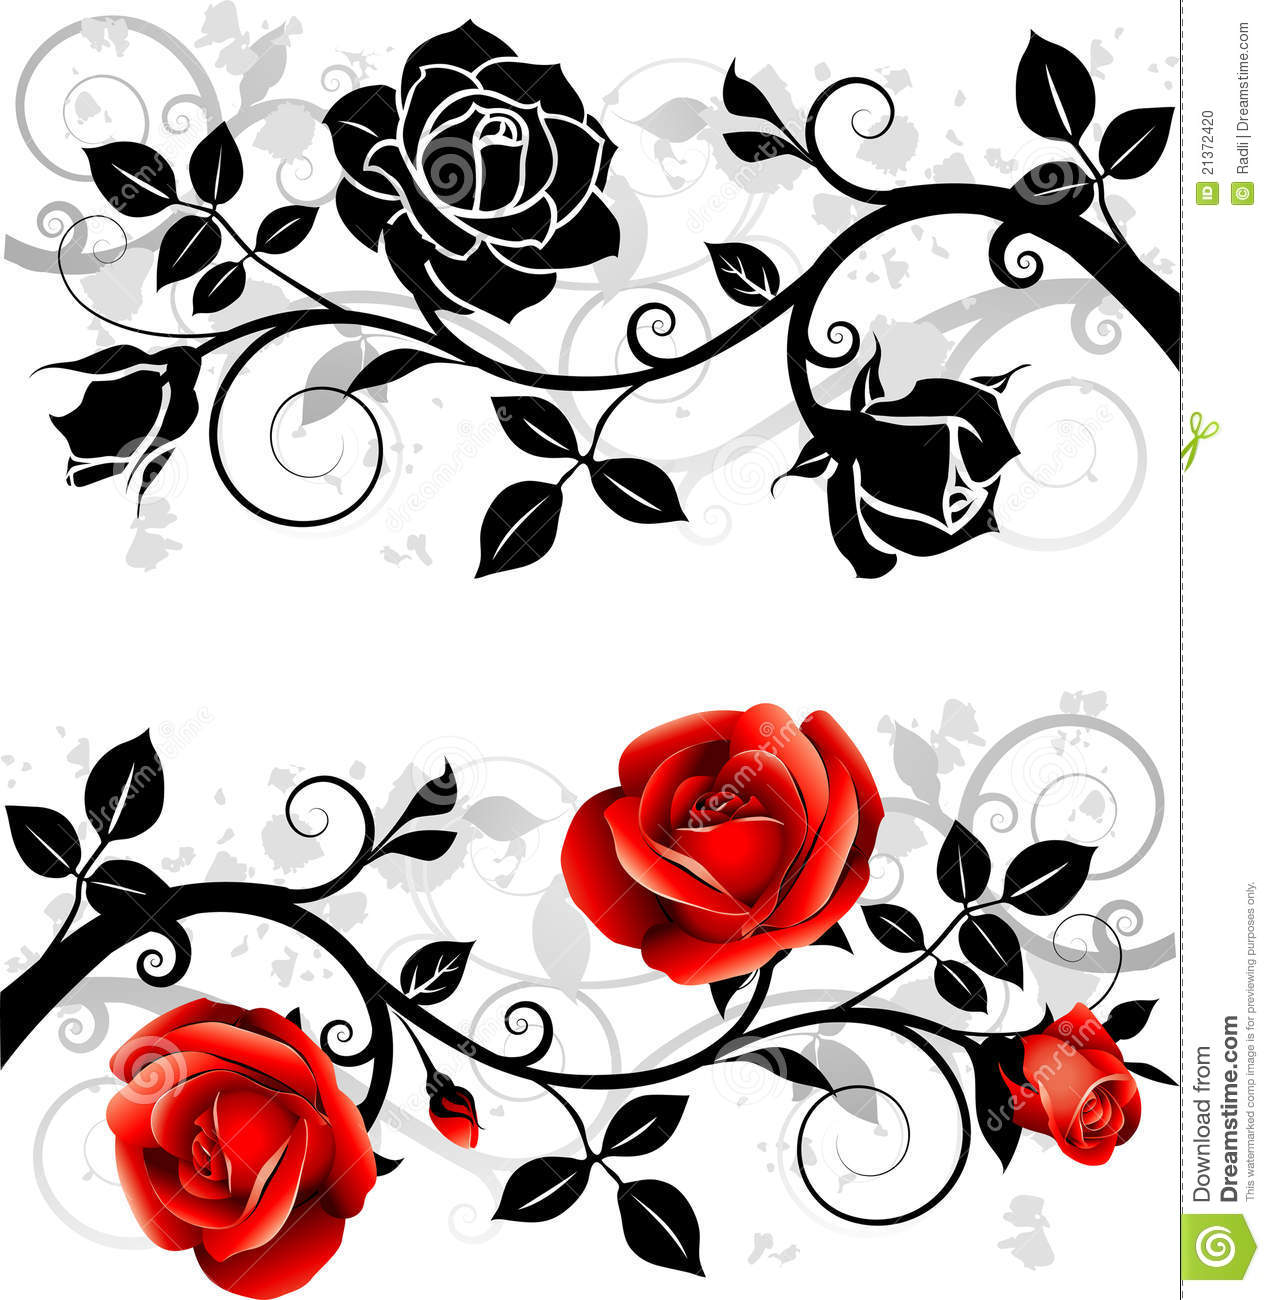 Ornament with roses